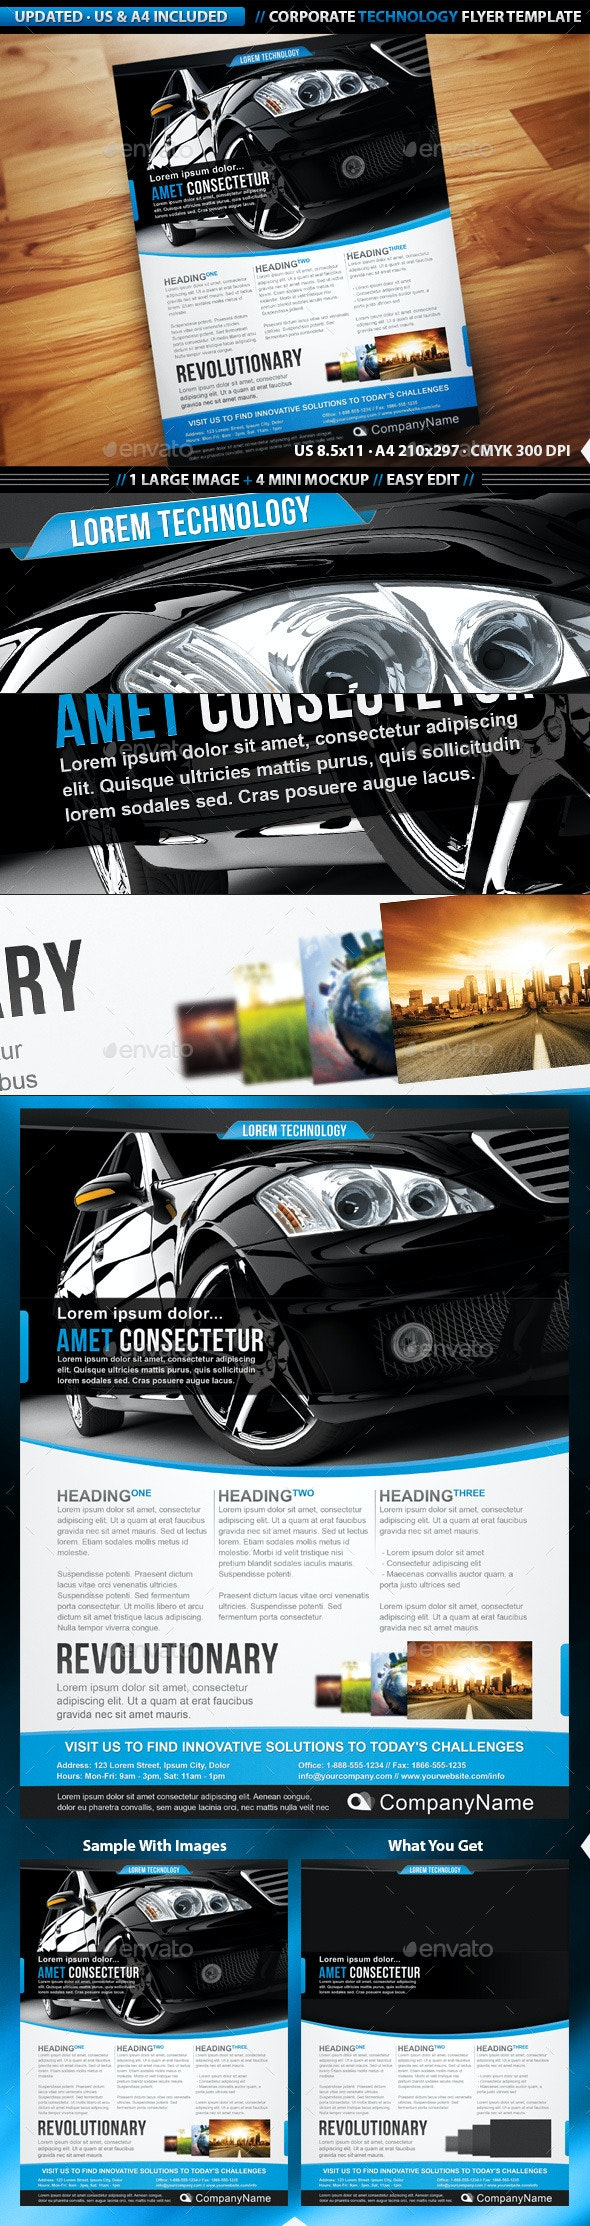 Corporate Technology Flyer Template - Corporate Flyers